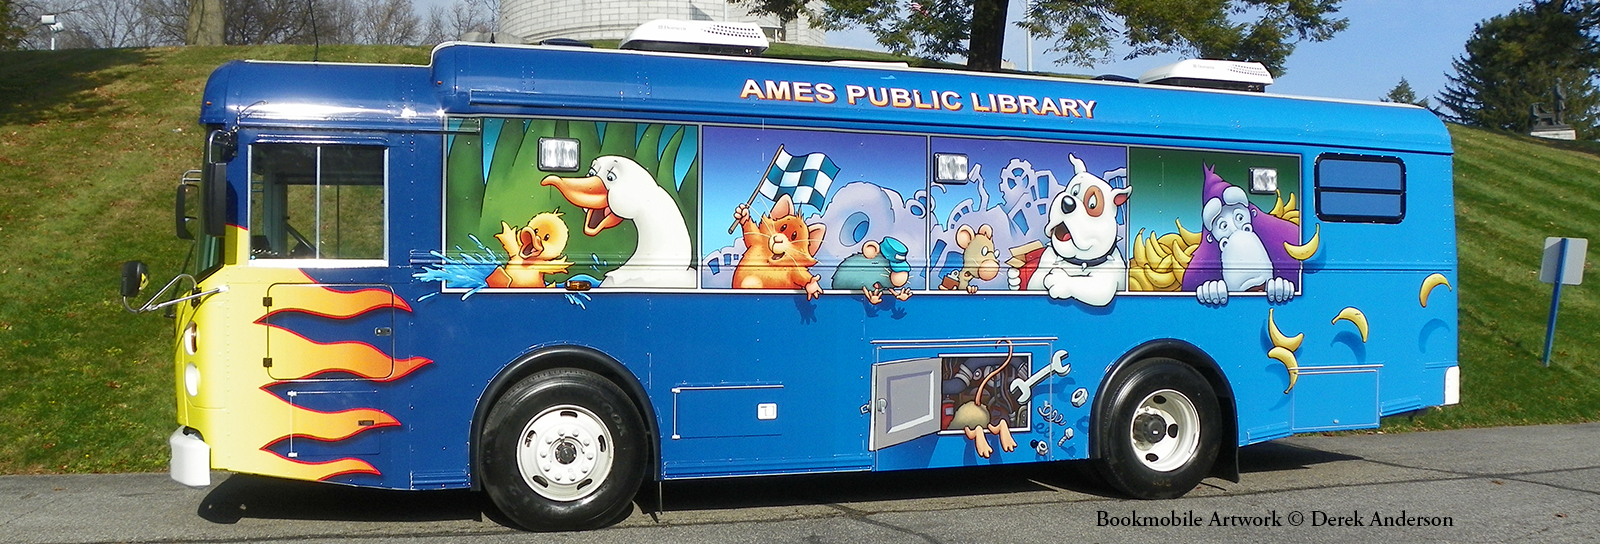 Ames Public Library Bookmobile